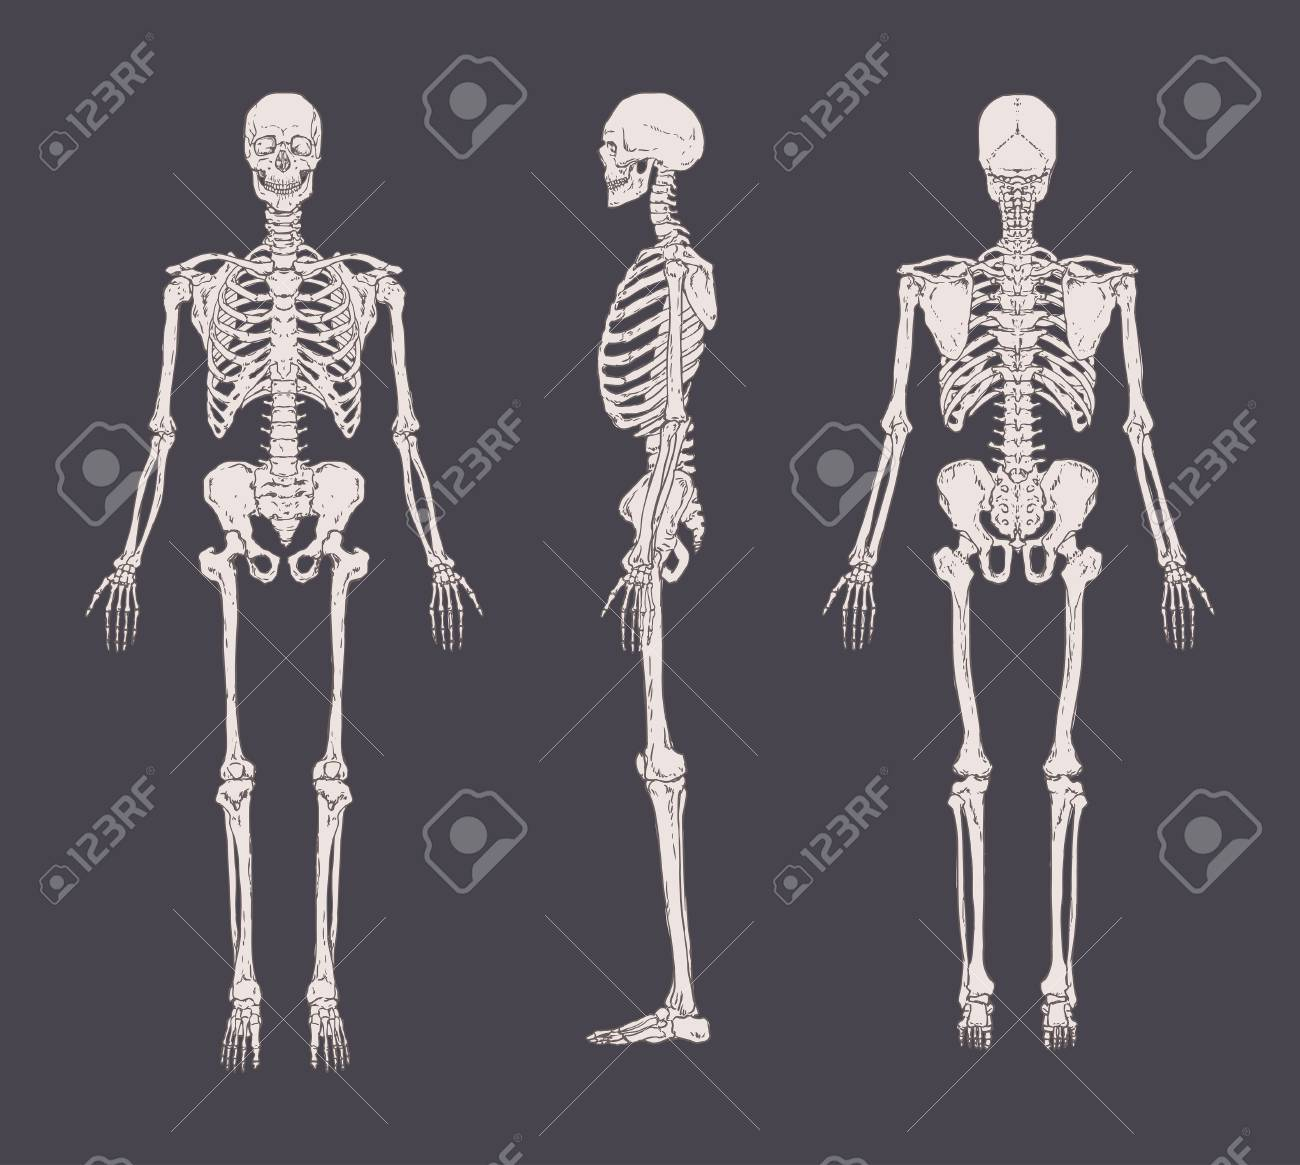 Set of realistic skeletons isolated on gray background. Anterior, lateral and posterior view. - 85204677